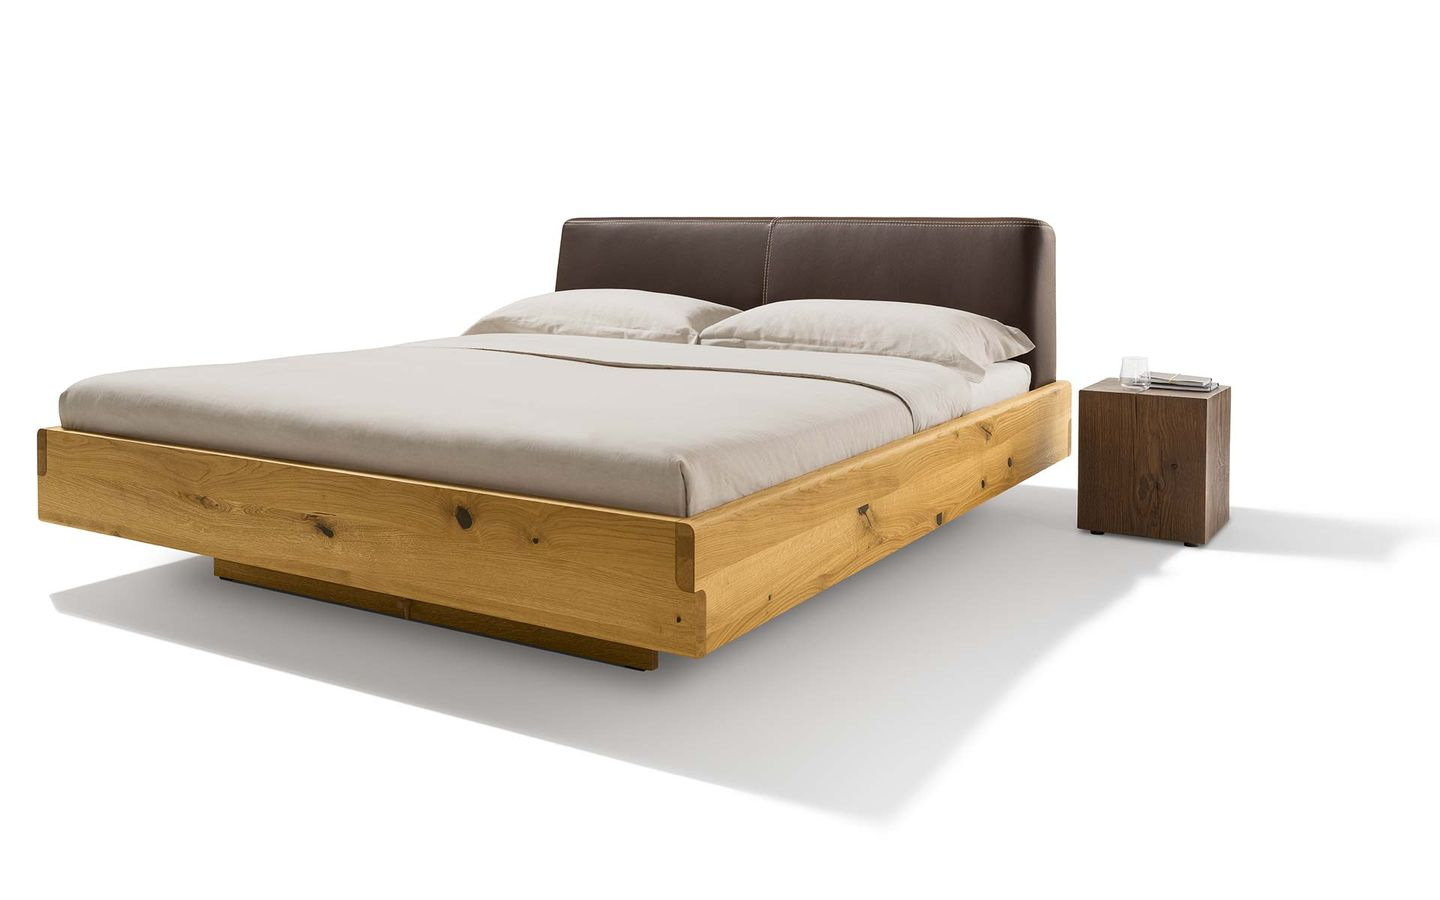 nox solid wood bed with leather headboard